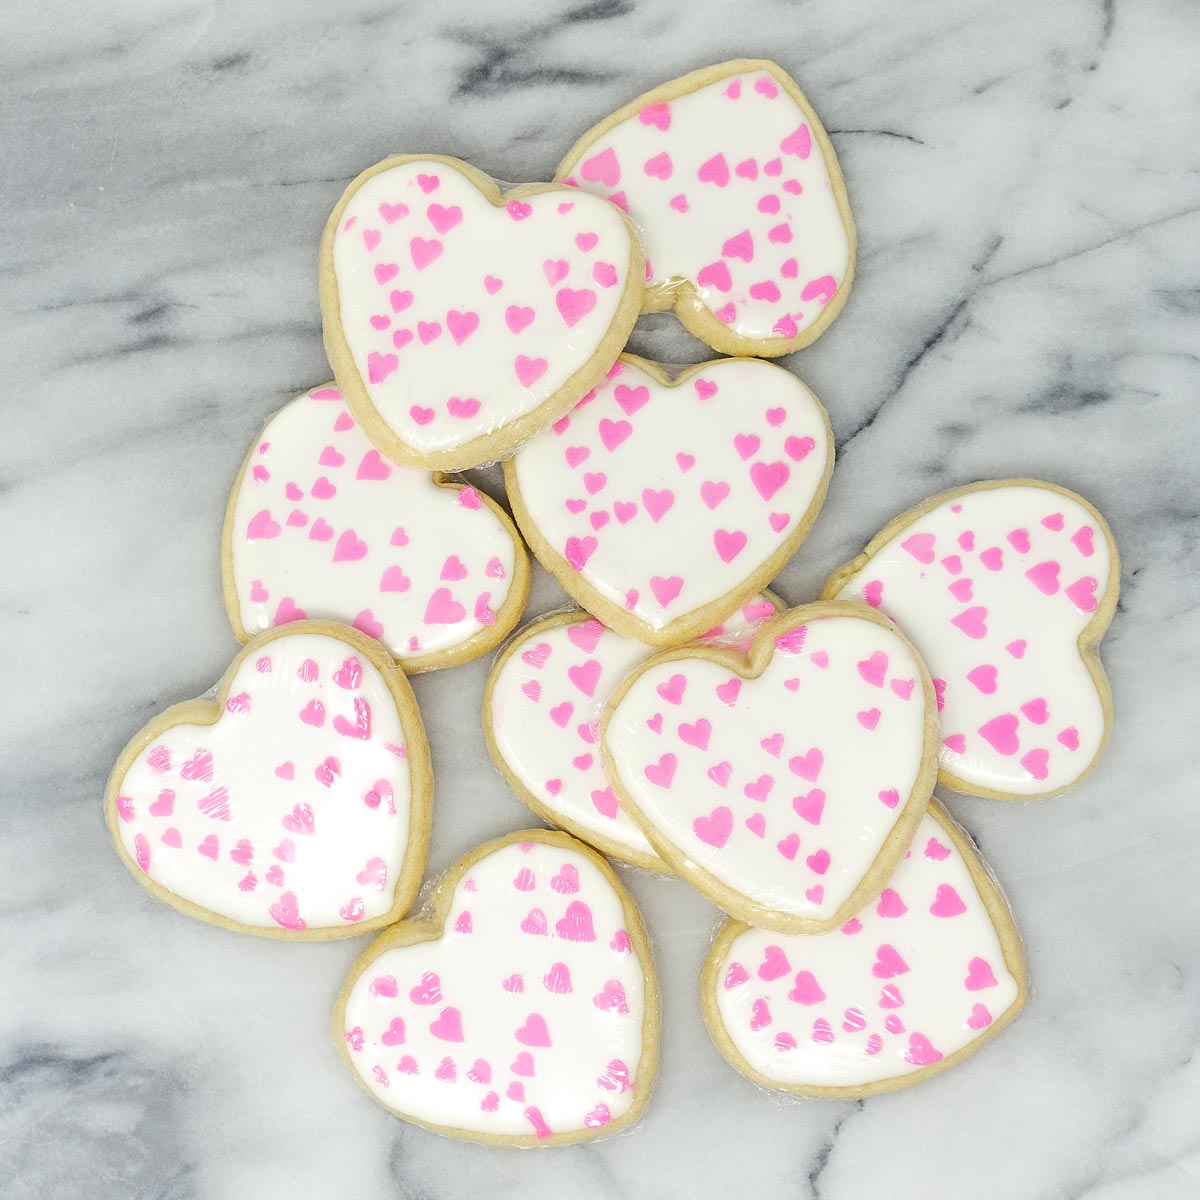 heart decorated sugar cookies for bridal shower favors.